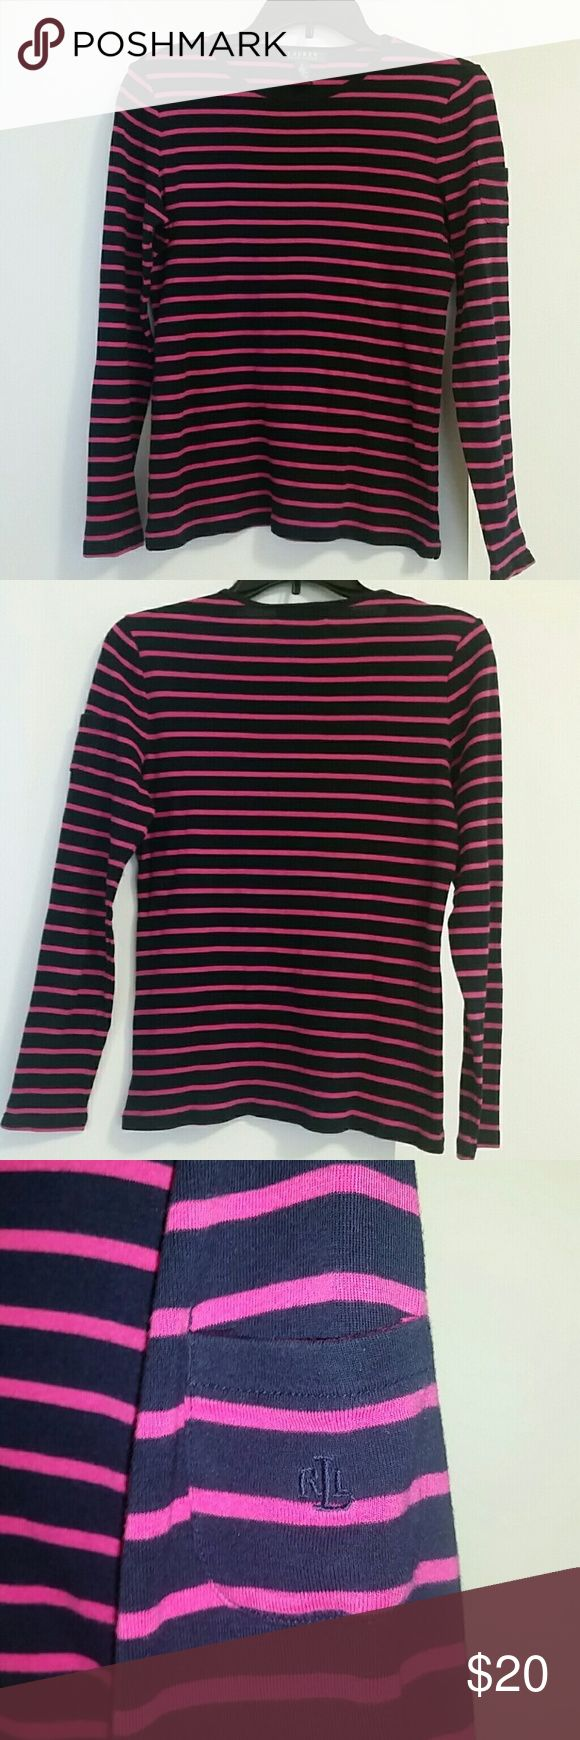 Ralph Lauren Long Sleeve Ralph Lauren long sleeve top, size Medium. Navy blue and pink striped. Small pocket on the left sleeve. Lauren Ralph Lauren Tops Tees - Long Sleeve